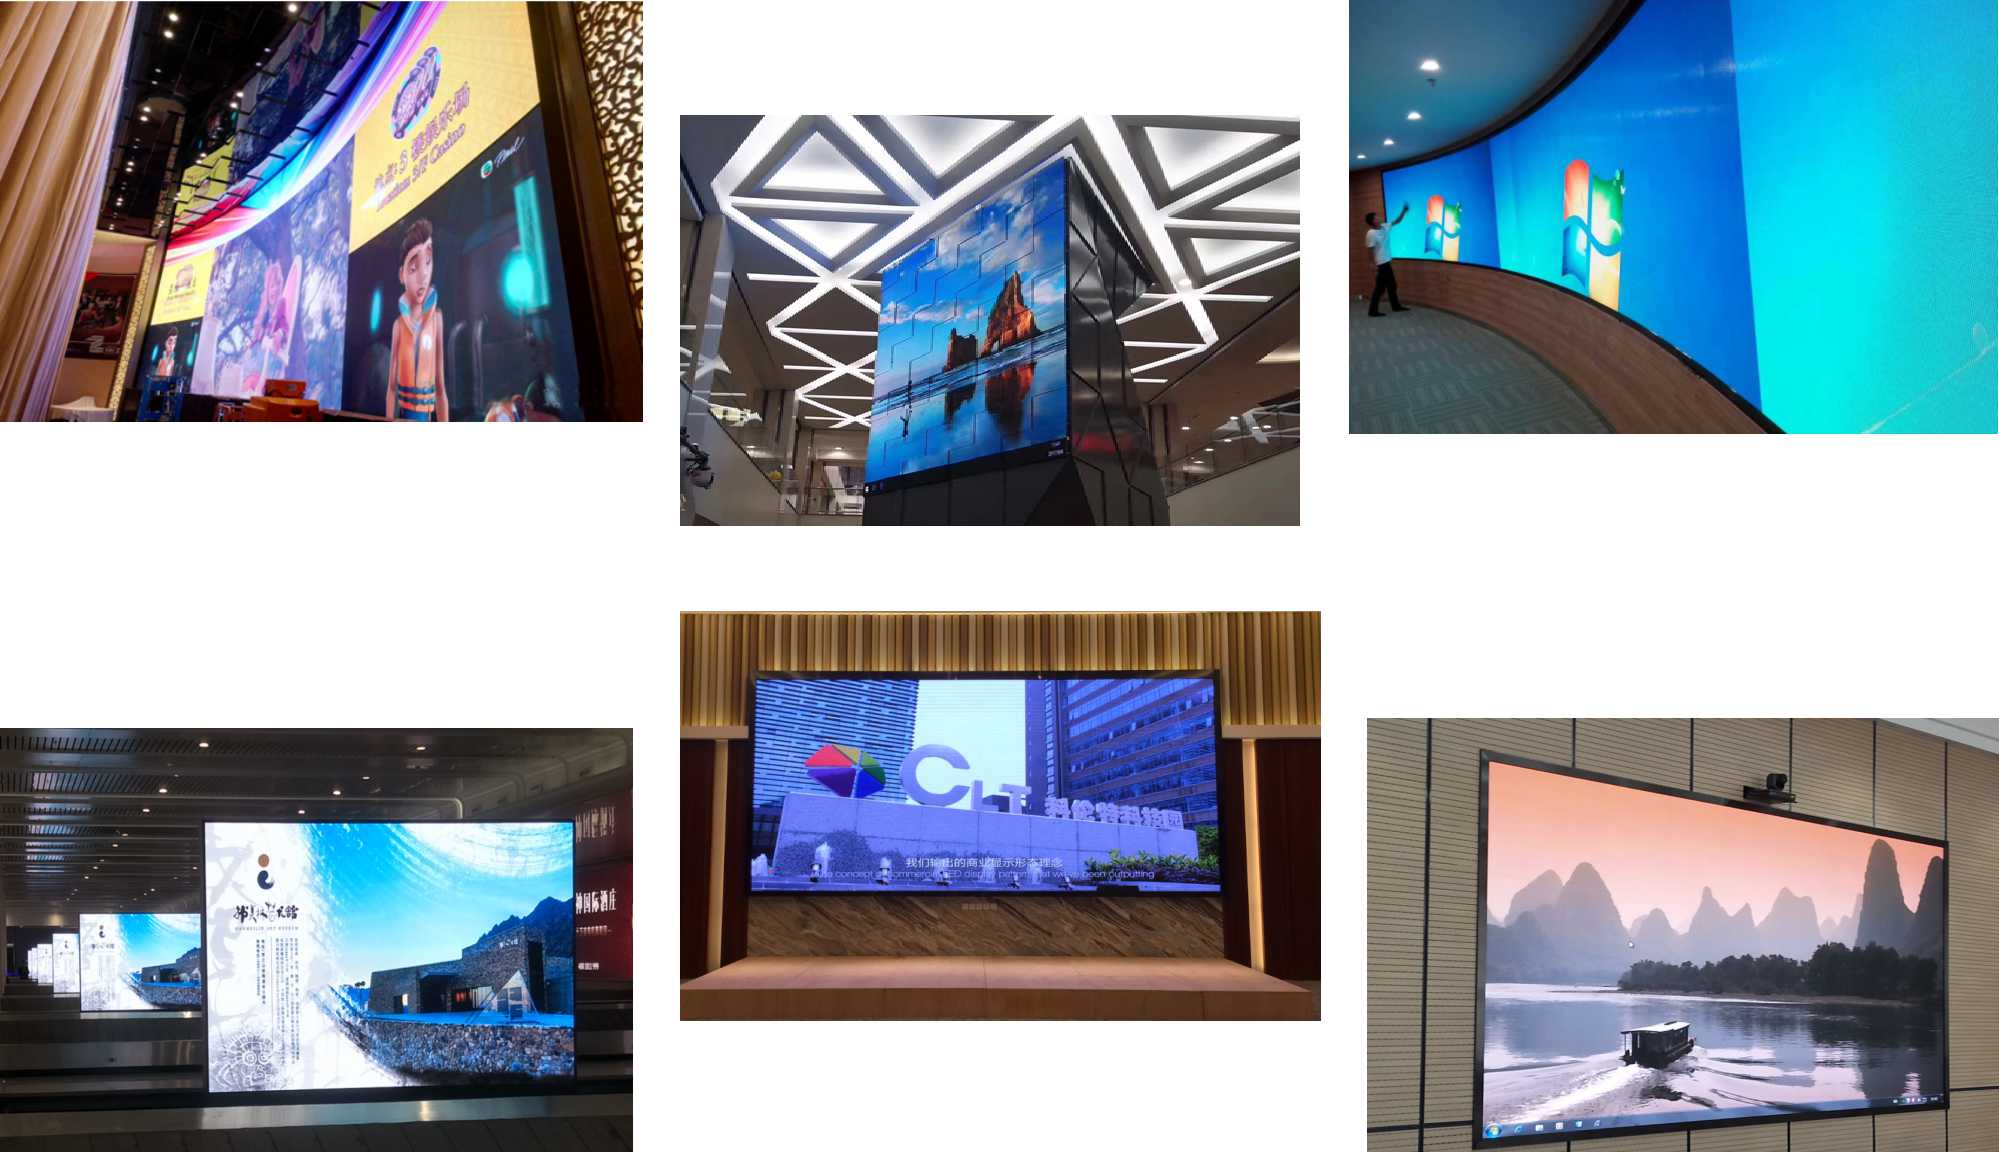 LED screen project